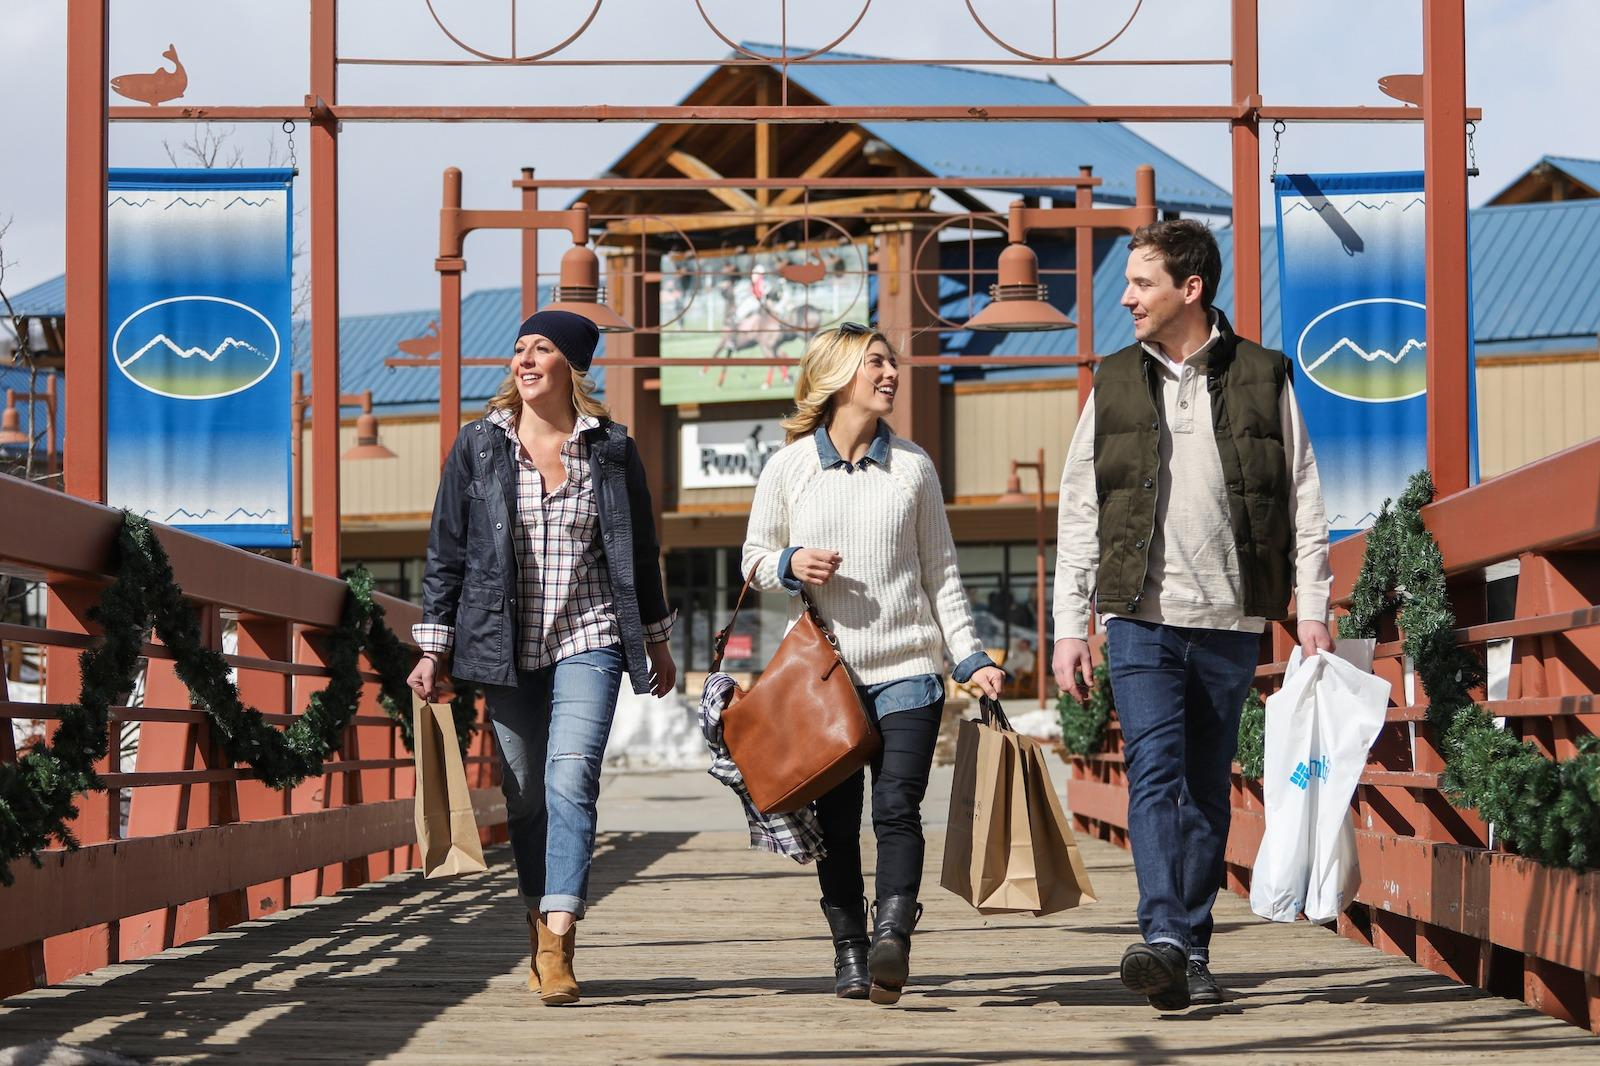 two women and one man shopping in the Outlets at Silverthorne, CO